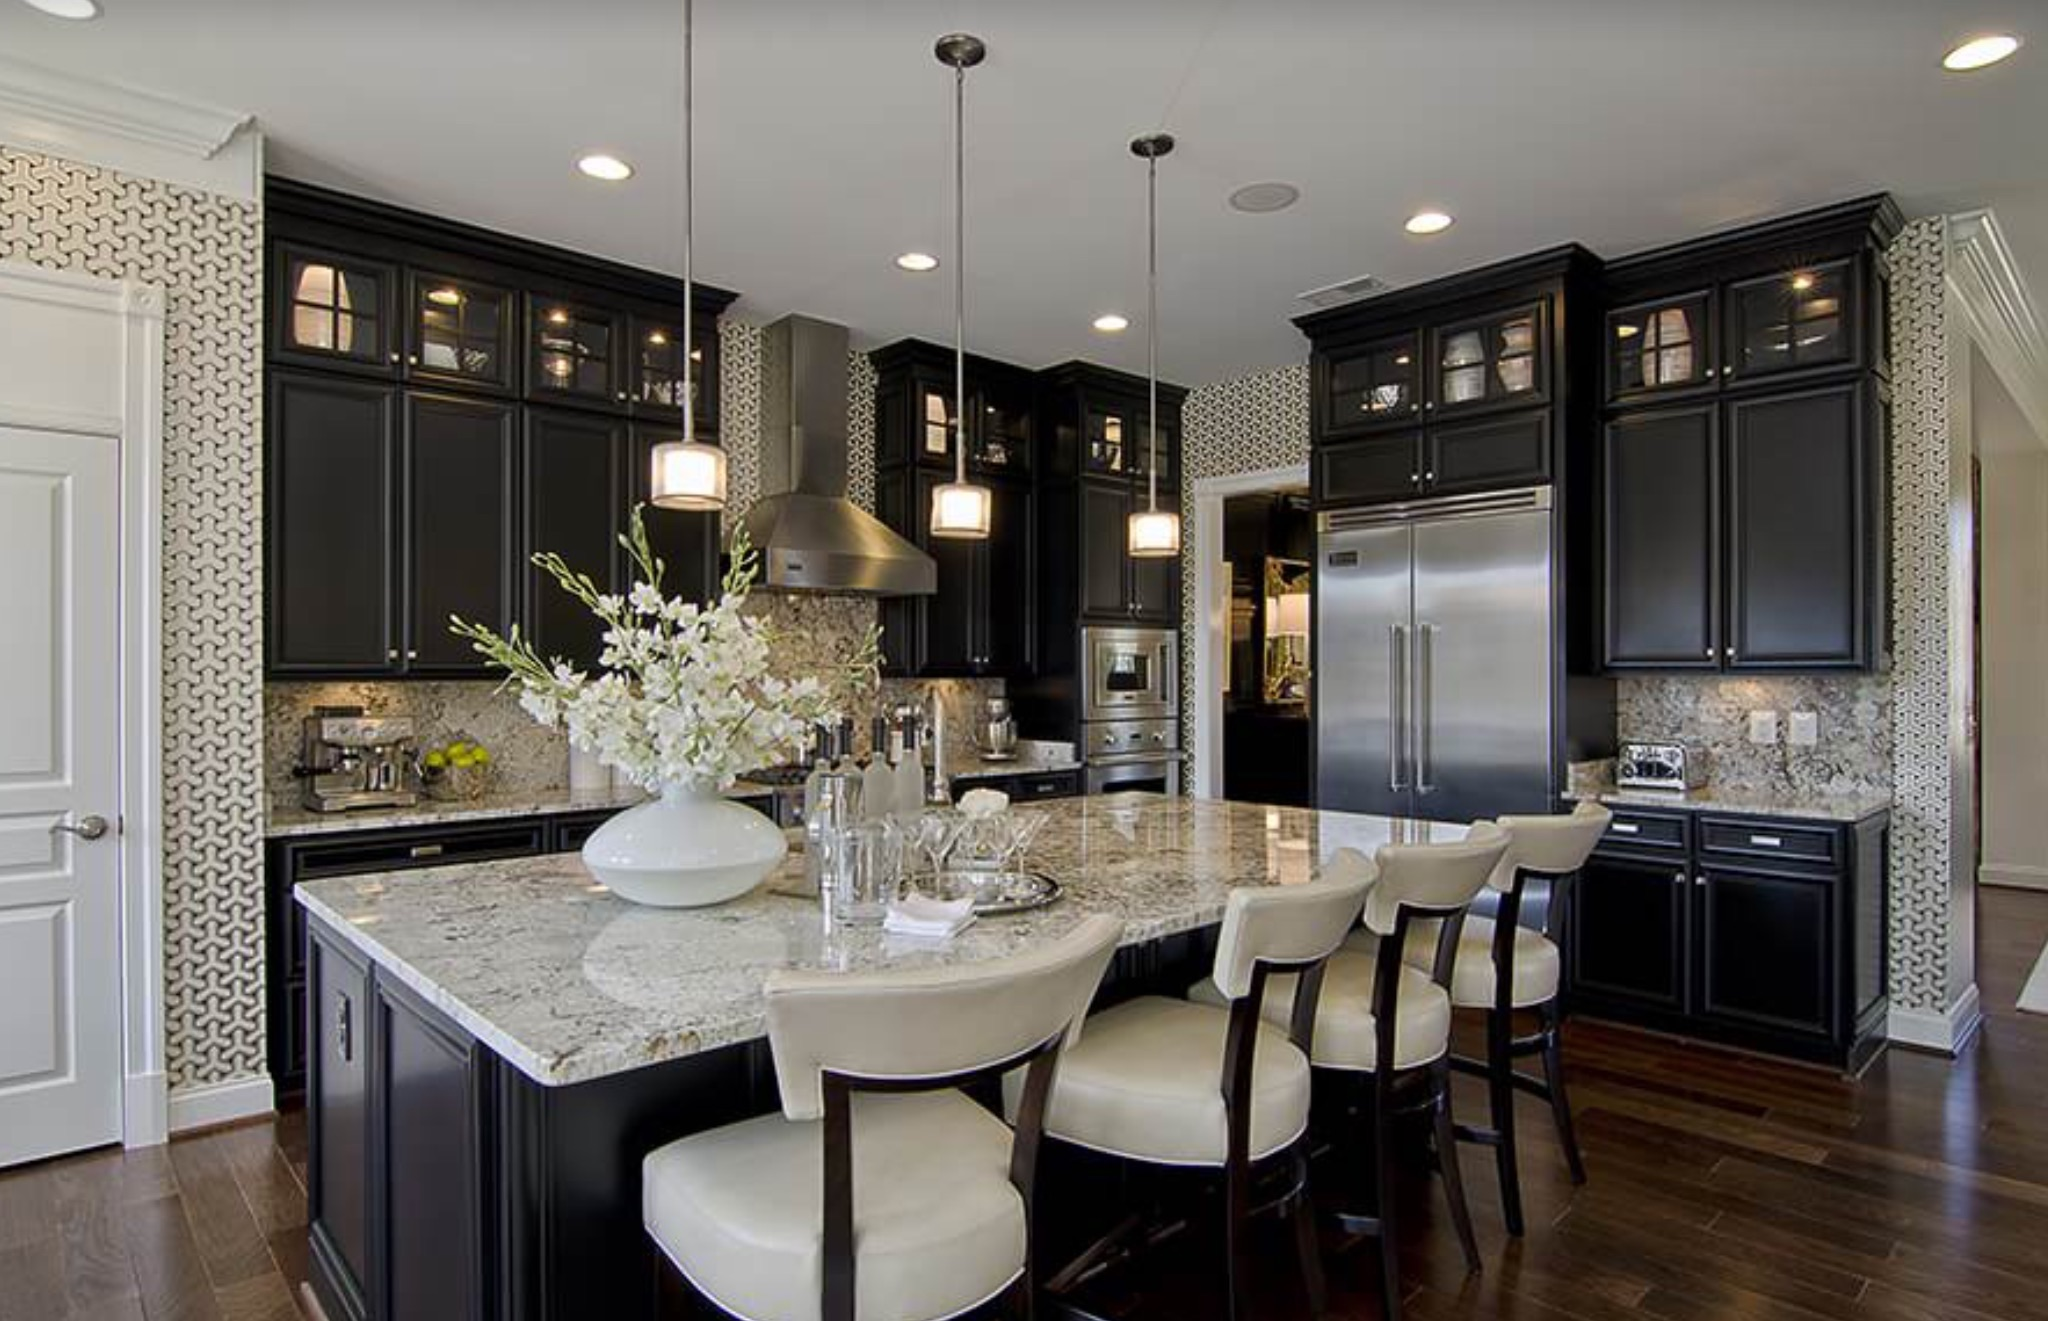 Lights abound in this kitchen - Photography by Maxine Schnitzer Photography